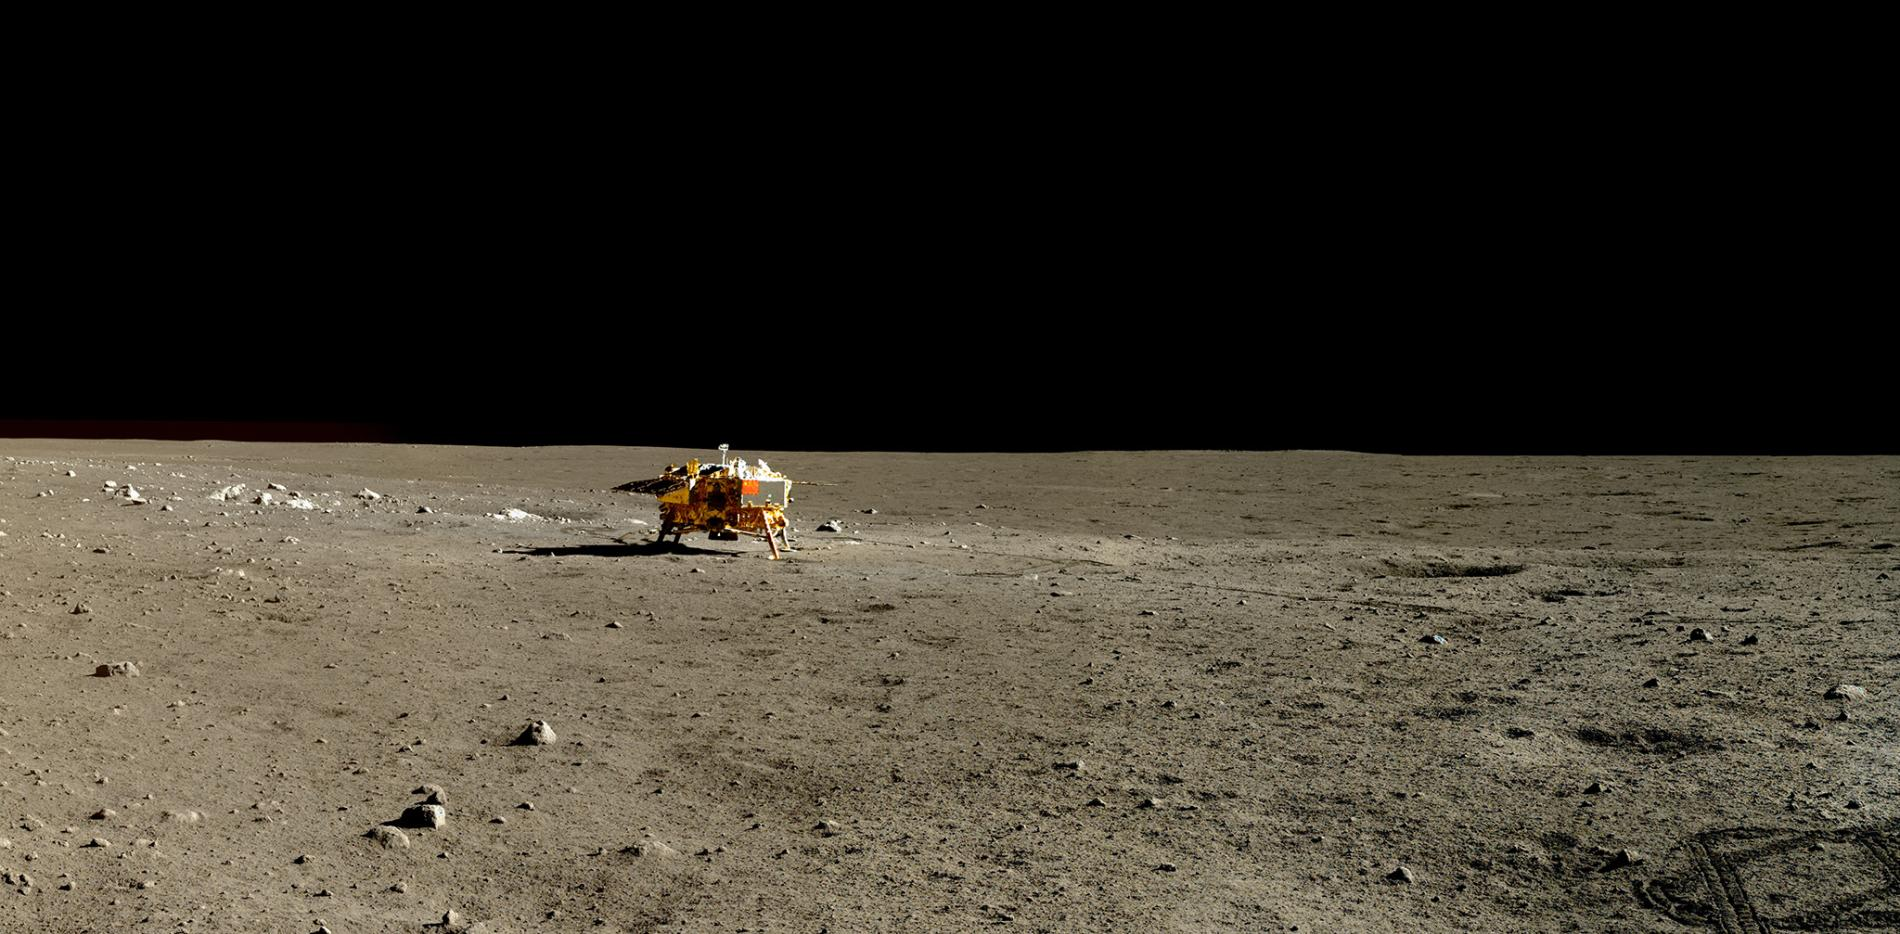 First Team Nissan >> China's First and Only Moon Rover, Yutu, is Officially ...